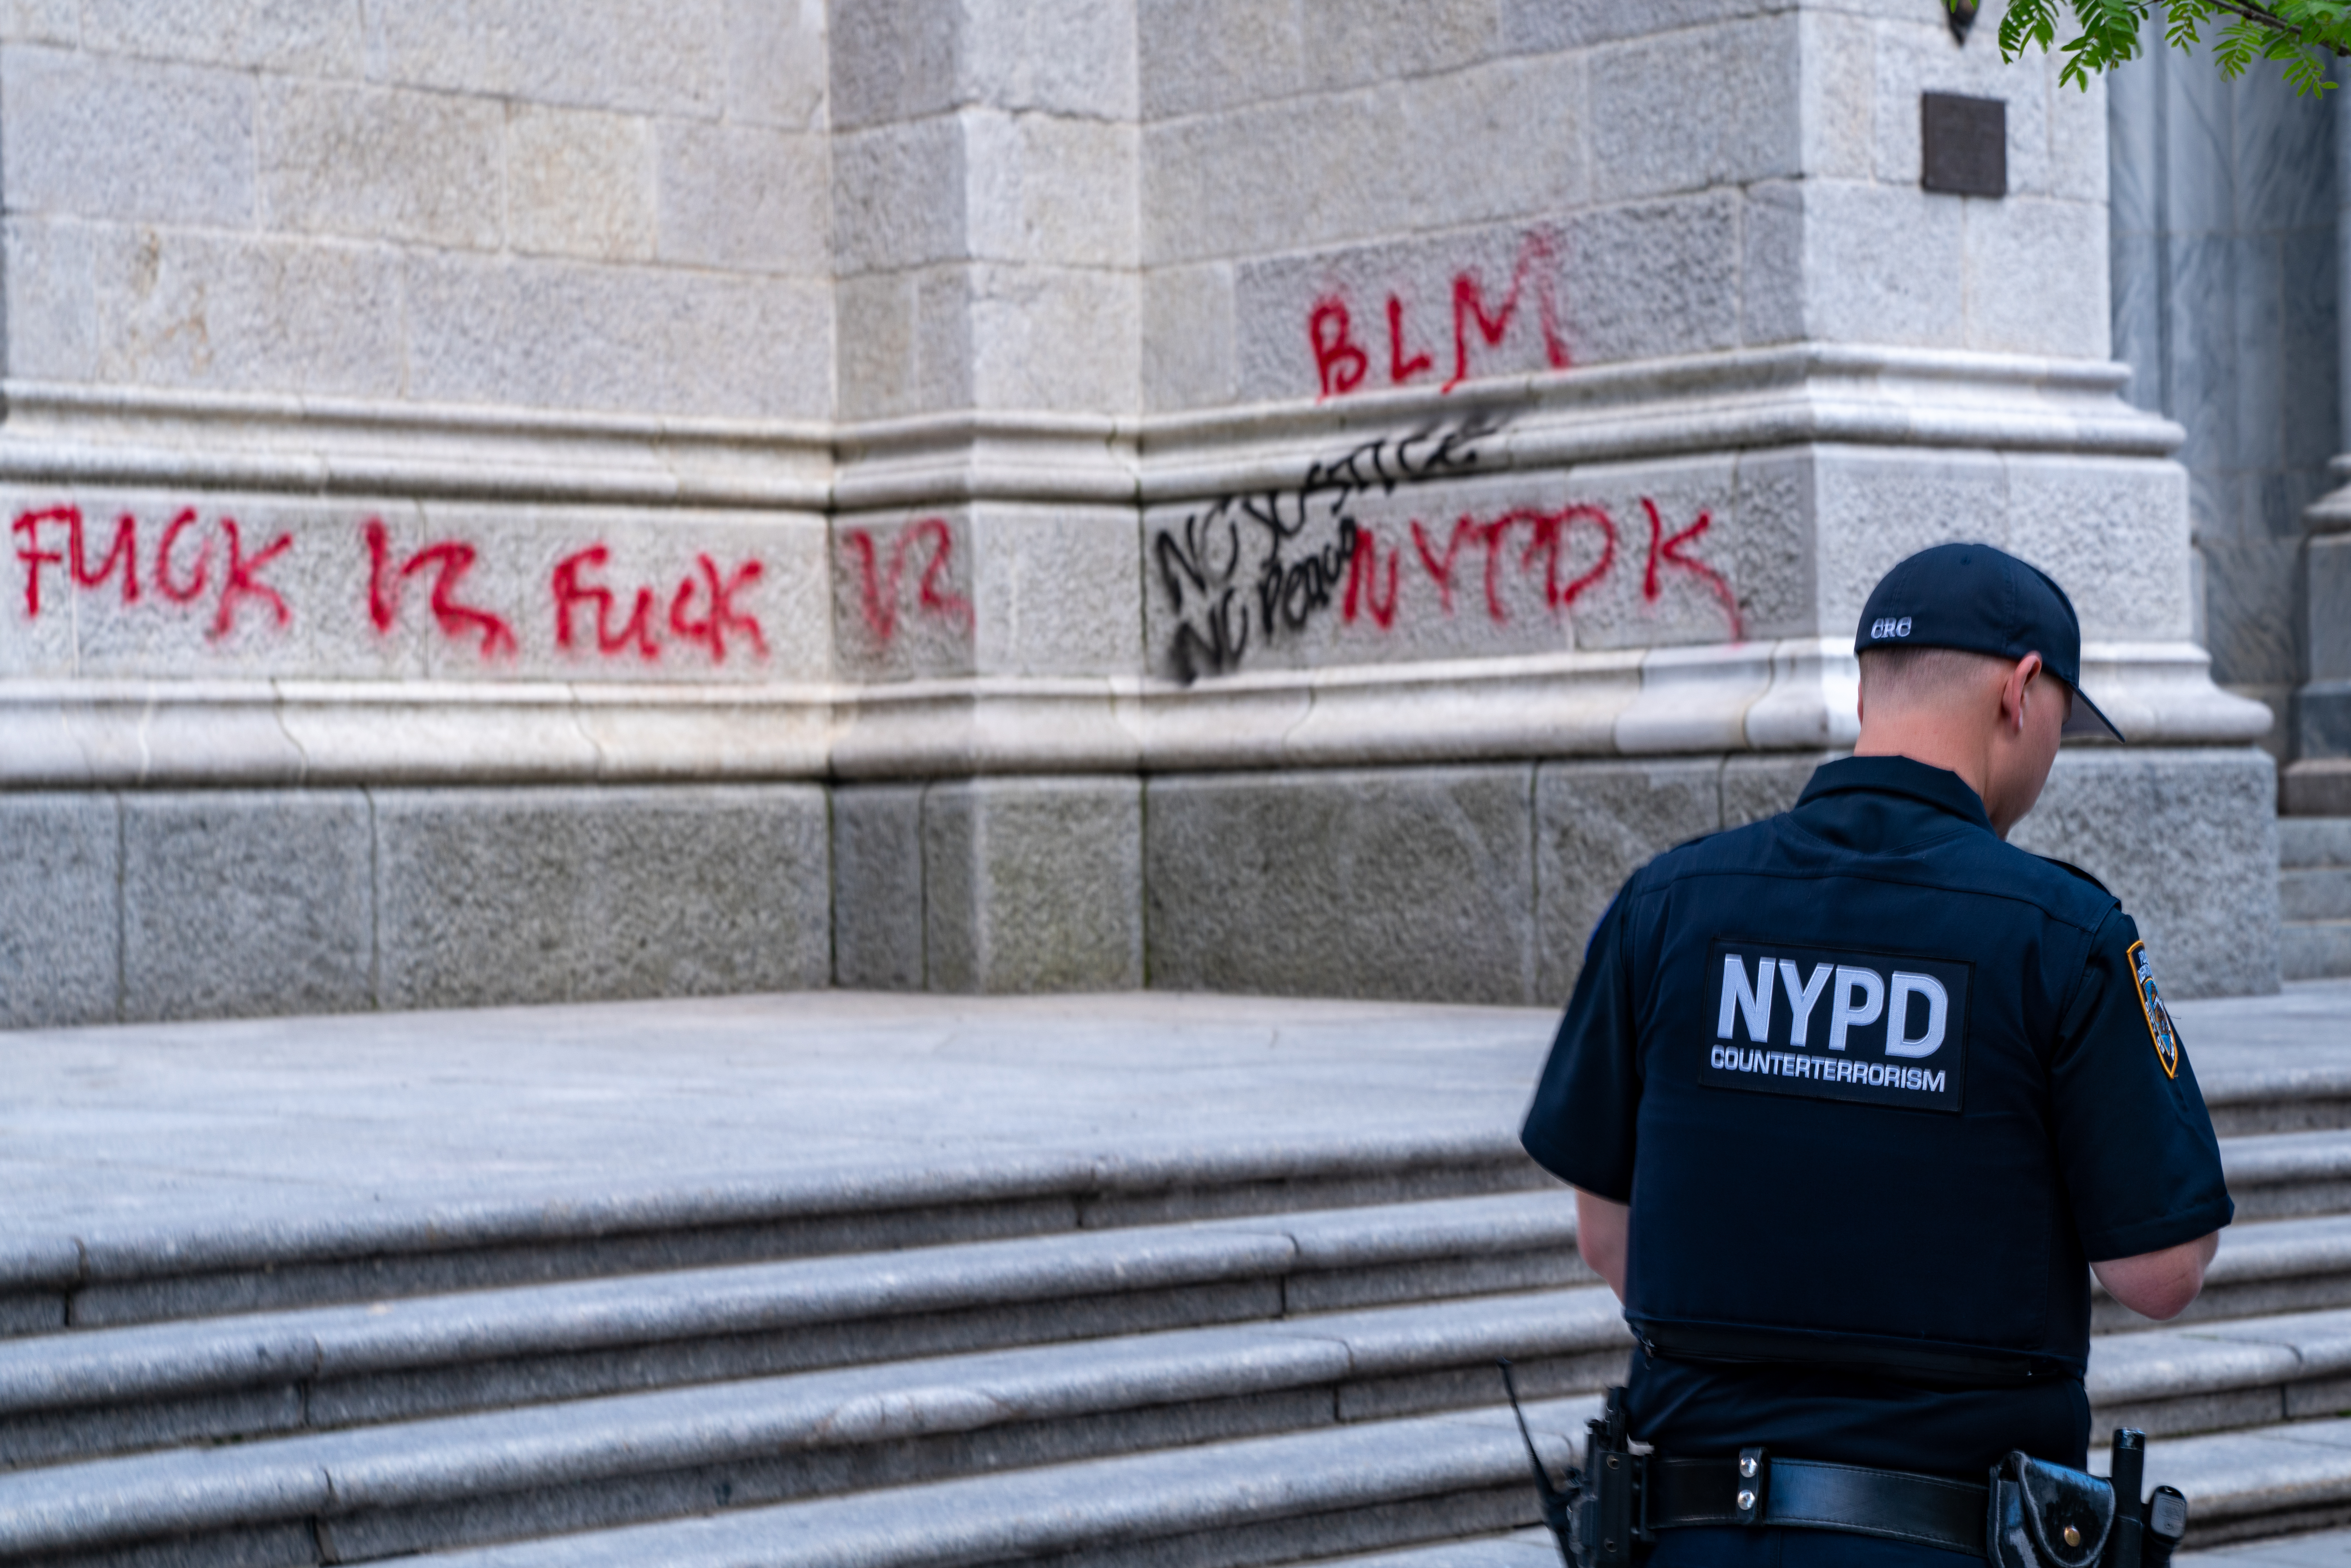 An NYPD officer walks by a vandalized St. Patrick's Cathedral on May 30, 2020 in New York City. (Photo by David Dee Delgado/Getty Images)